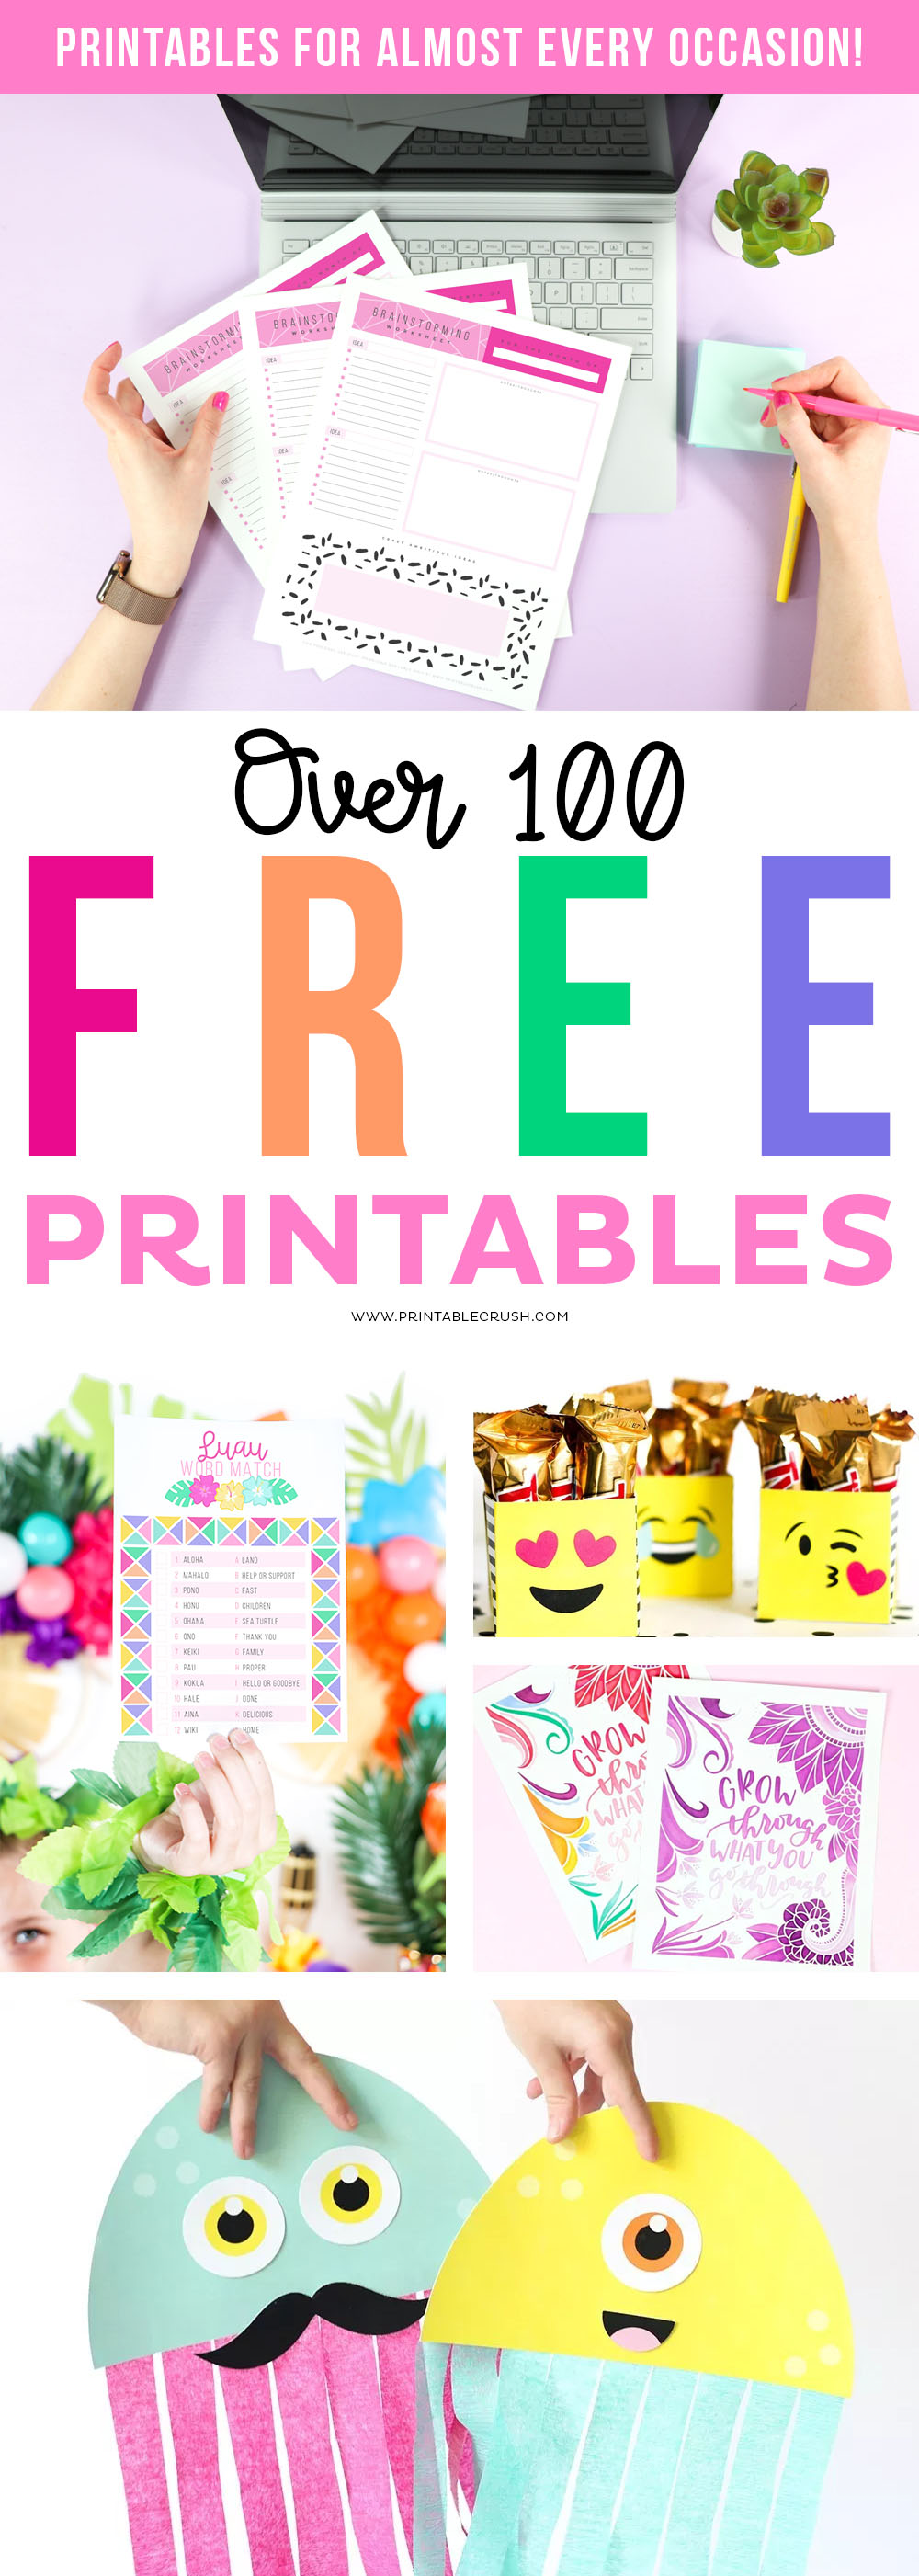 Looking for FREE Printables, but having a problem navigating through Pinterest? You'll love this list of over 100 printables for almost EVERY Occasion! #freeprintables #freeholidayprintables #printables #printablecrush #printabledesigns #holidayprintables #freeprintable #printableactivities #partyprintables via @printablecrush